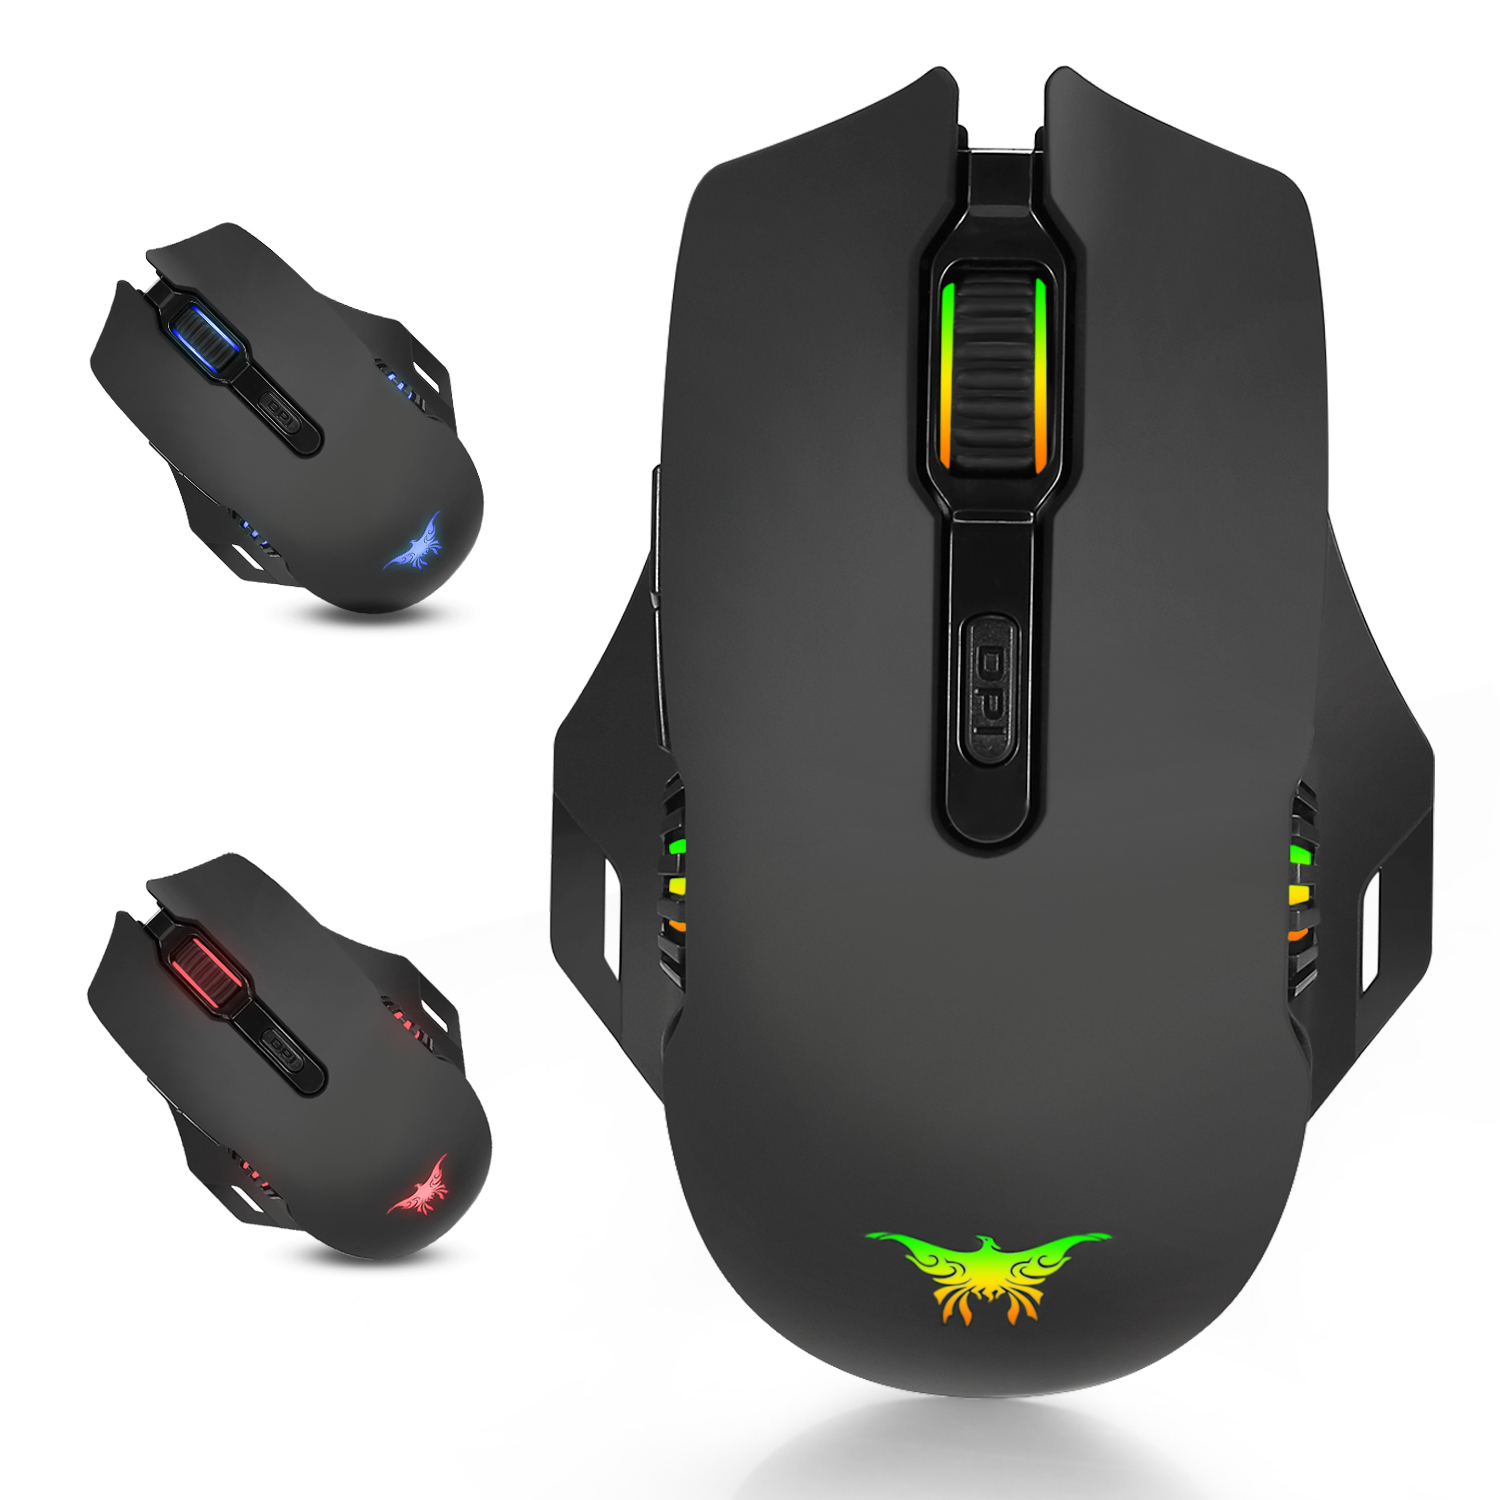 2.4G Wireless Gaming Mouse Optical Mice Adjustable DPI Levels 6 Buttons Chargeable for Computer PC Gamer Mice Support PC and Mac